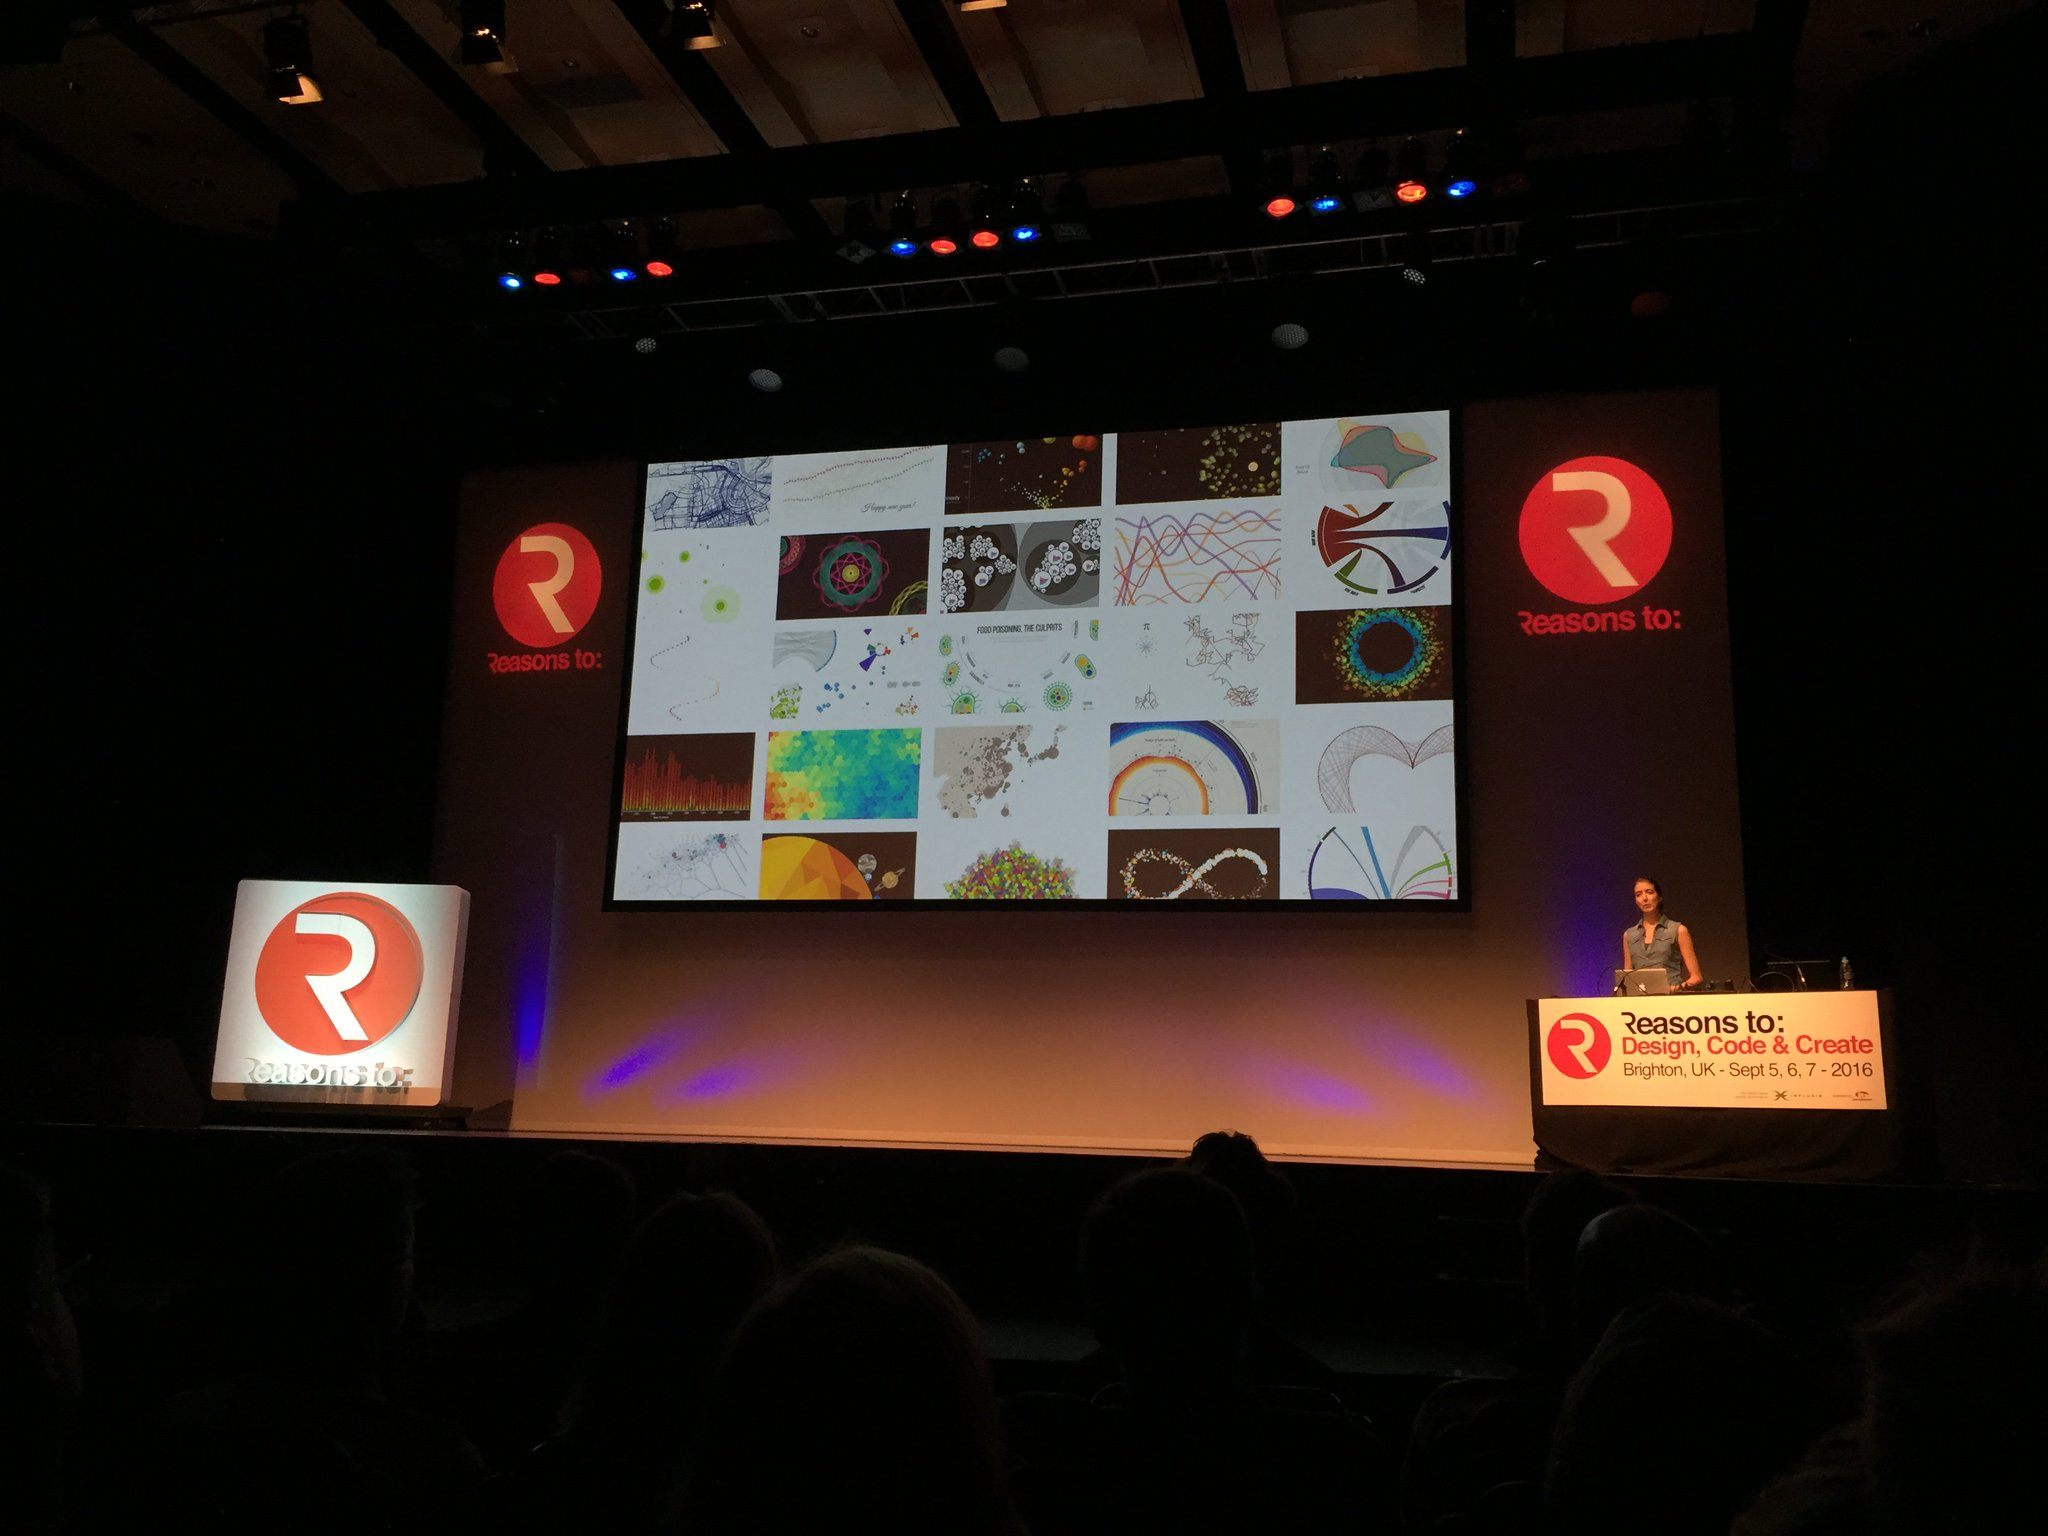 It's Elevator Pitch time @reasonsto and @NadiehBremer just presented 3 beautiful minutes https://t.co/6cg81RGYjr